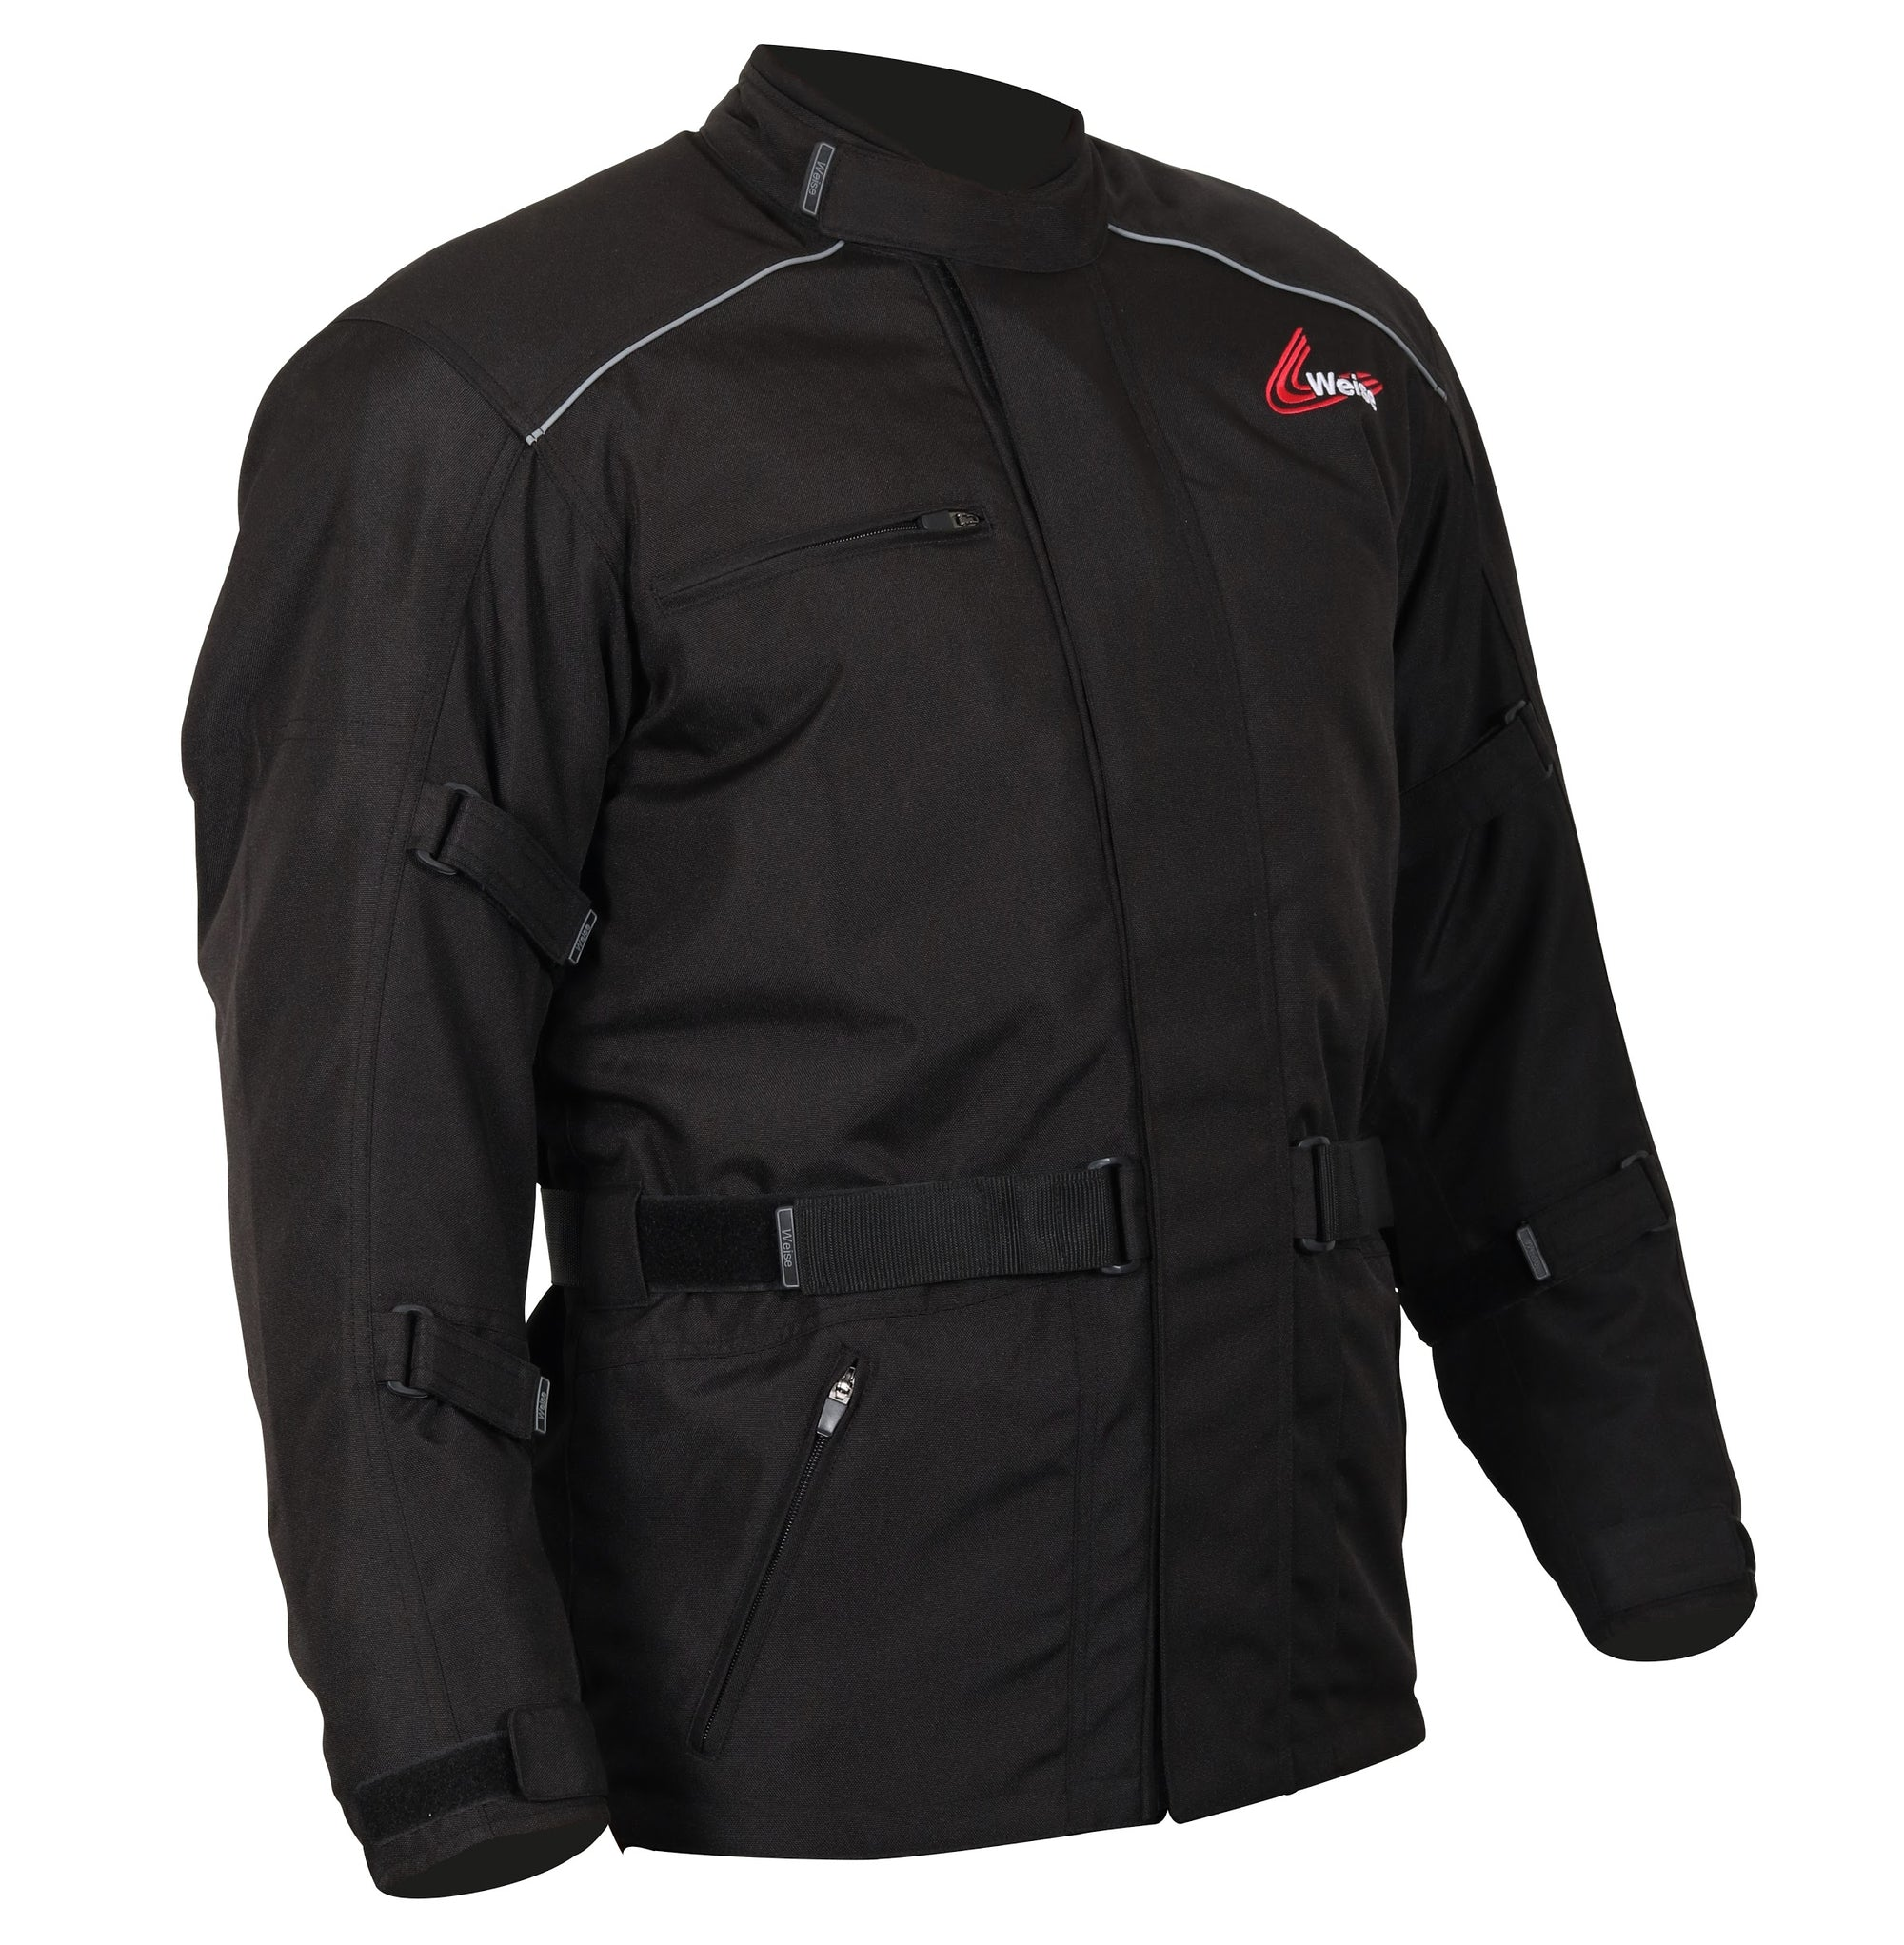 Core, Jacket, Weise - Averys Motorcycles